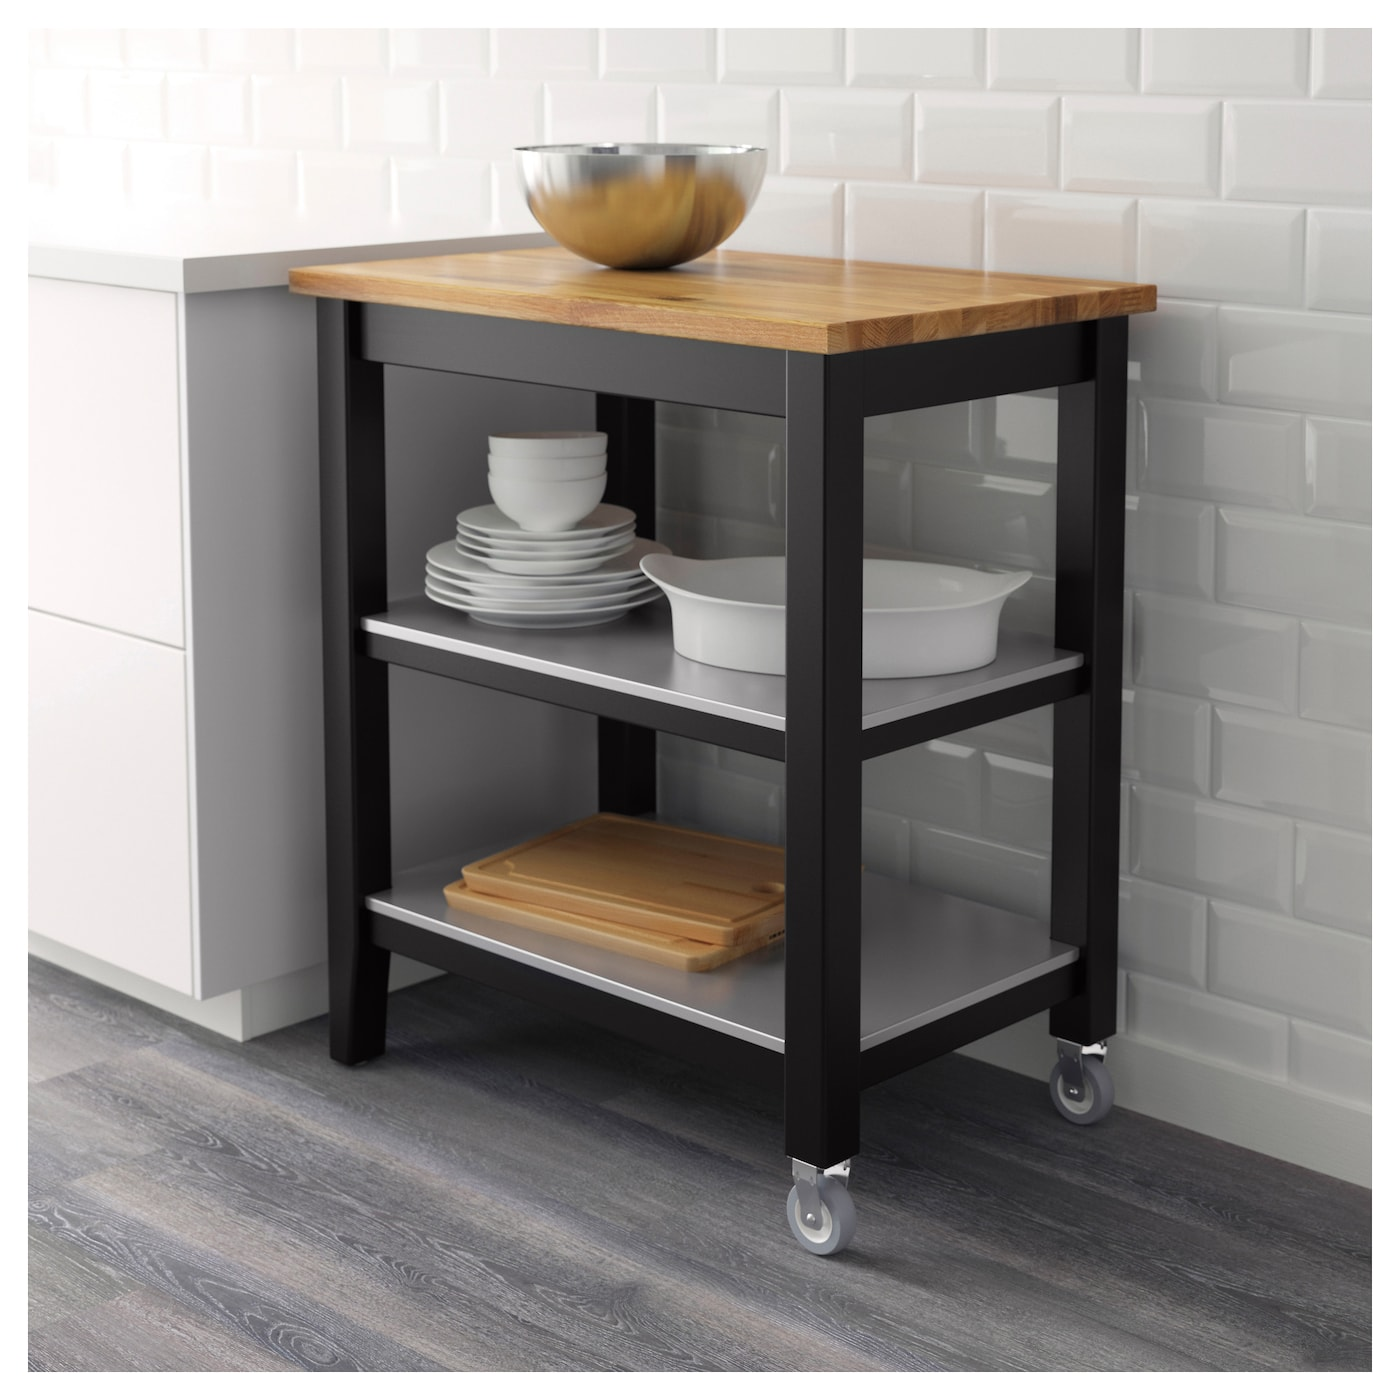 kitchen trolleys and islands stenstorp kitchen trolley black brown oak 79 x 51 x 90 cm 20136